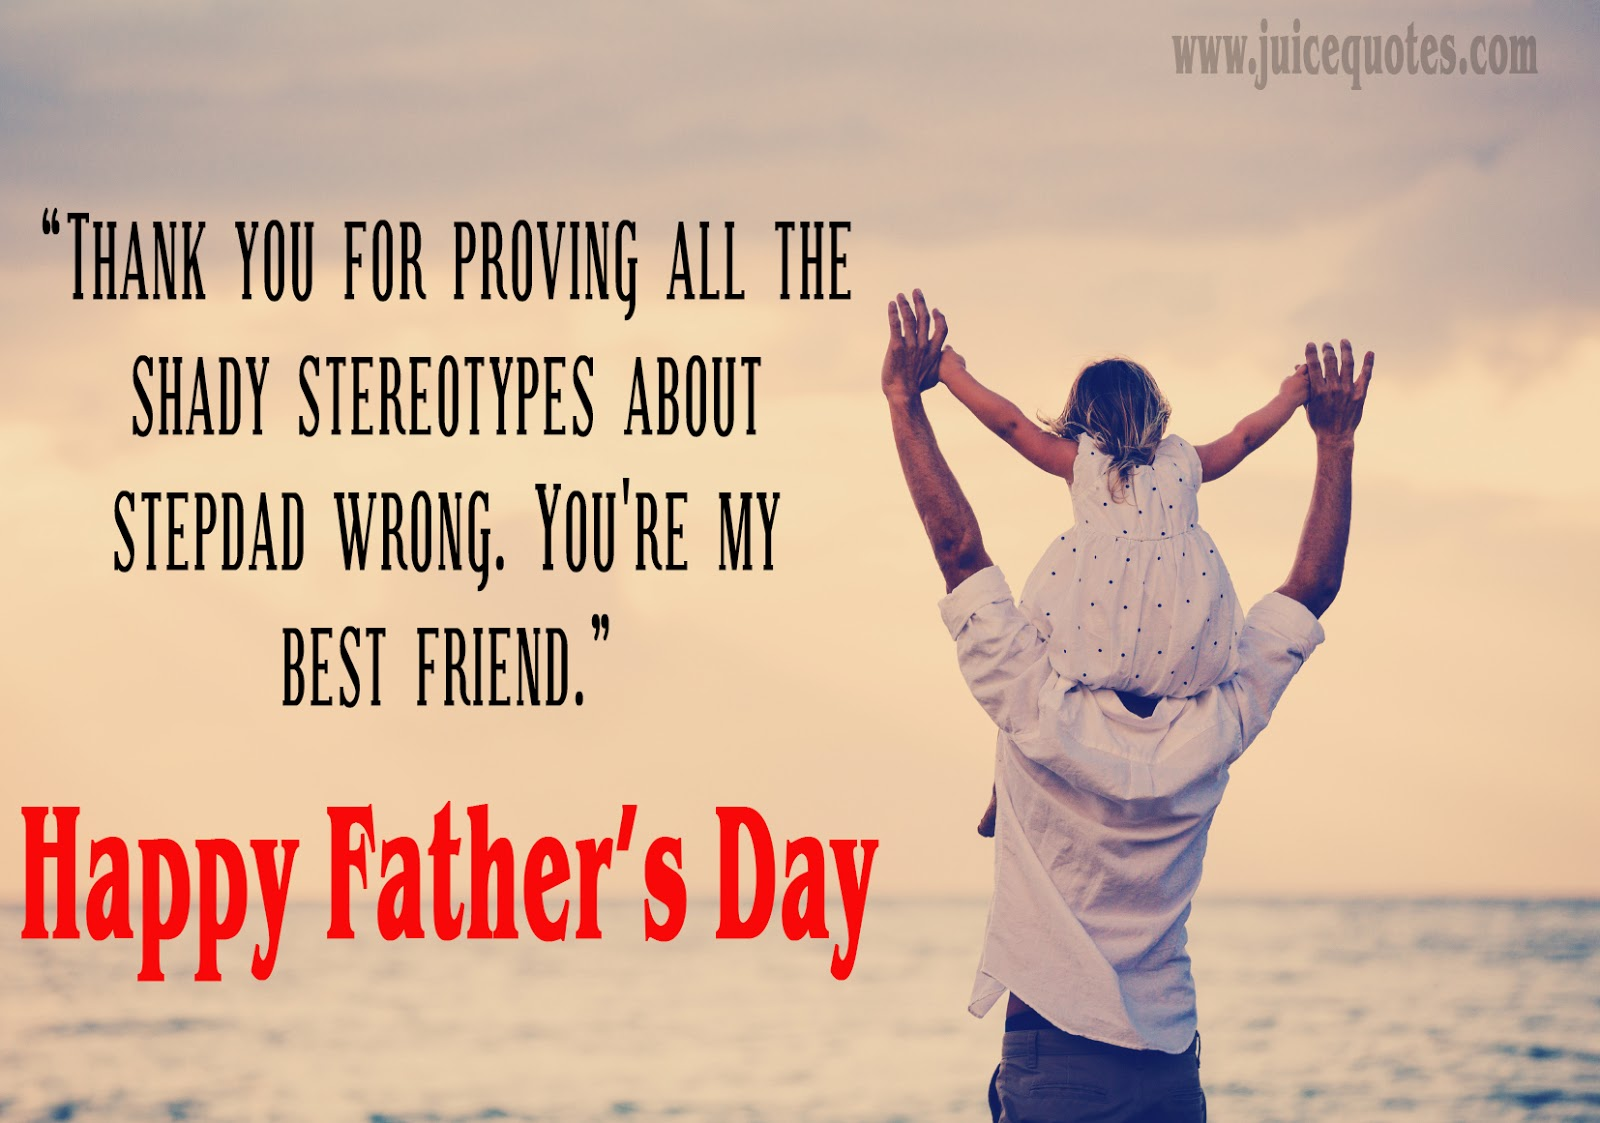 Beautiful Happy Fathers Day Wishes And Quotes With Images Juicy Quote